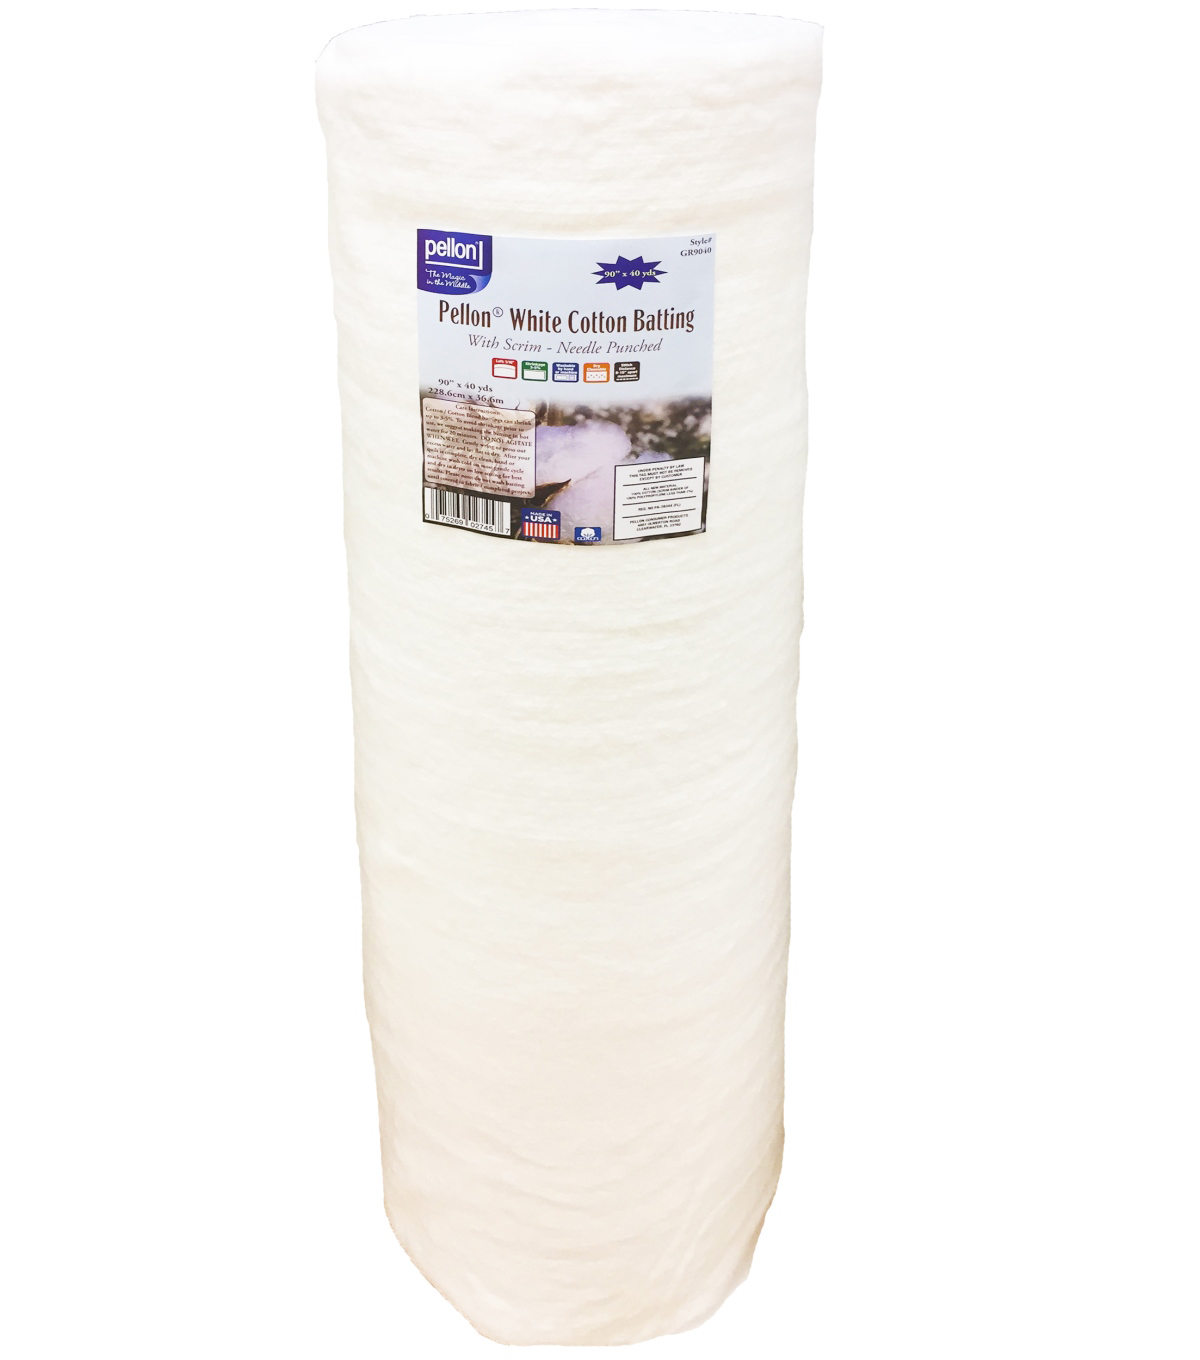 Pellon White Cotton Batting with Scrim 90\u0022x40yd Roll-Needle Punched